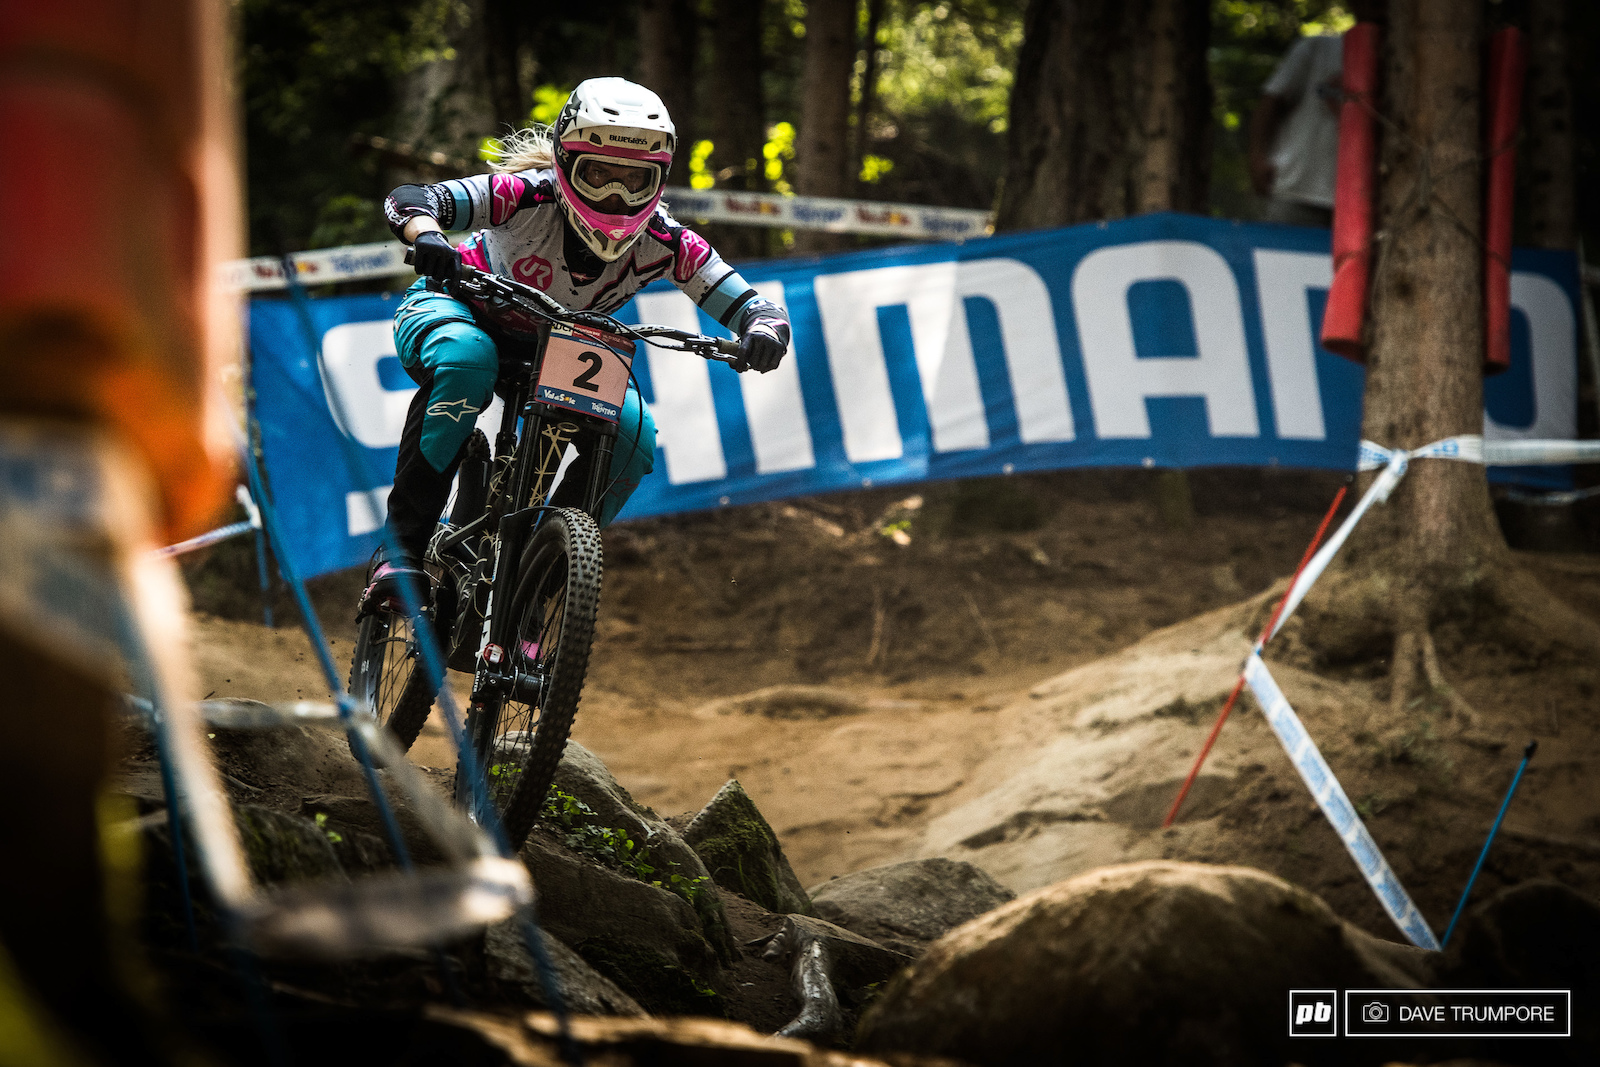 Tracey Hannah charged the course putting 2.4 seconds into Tahnee Serve and 5 seconds into Rachel Atherton.